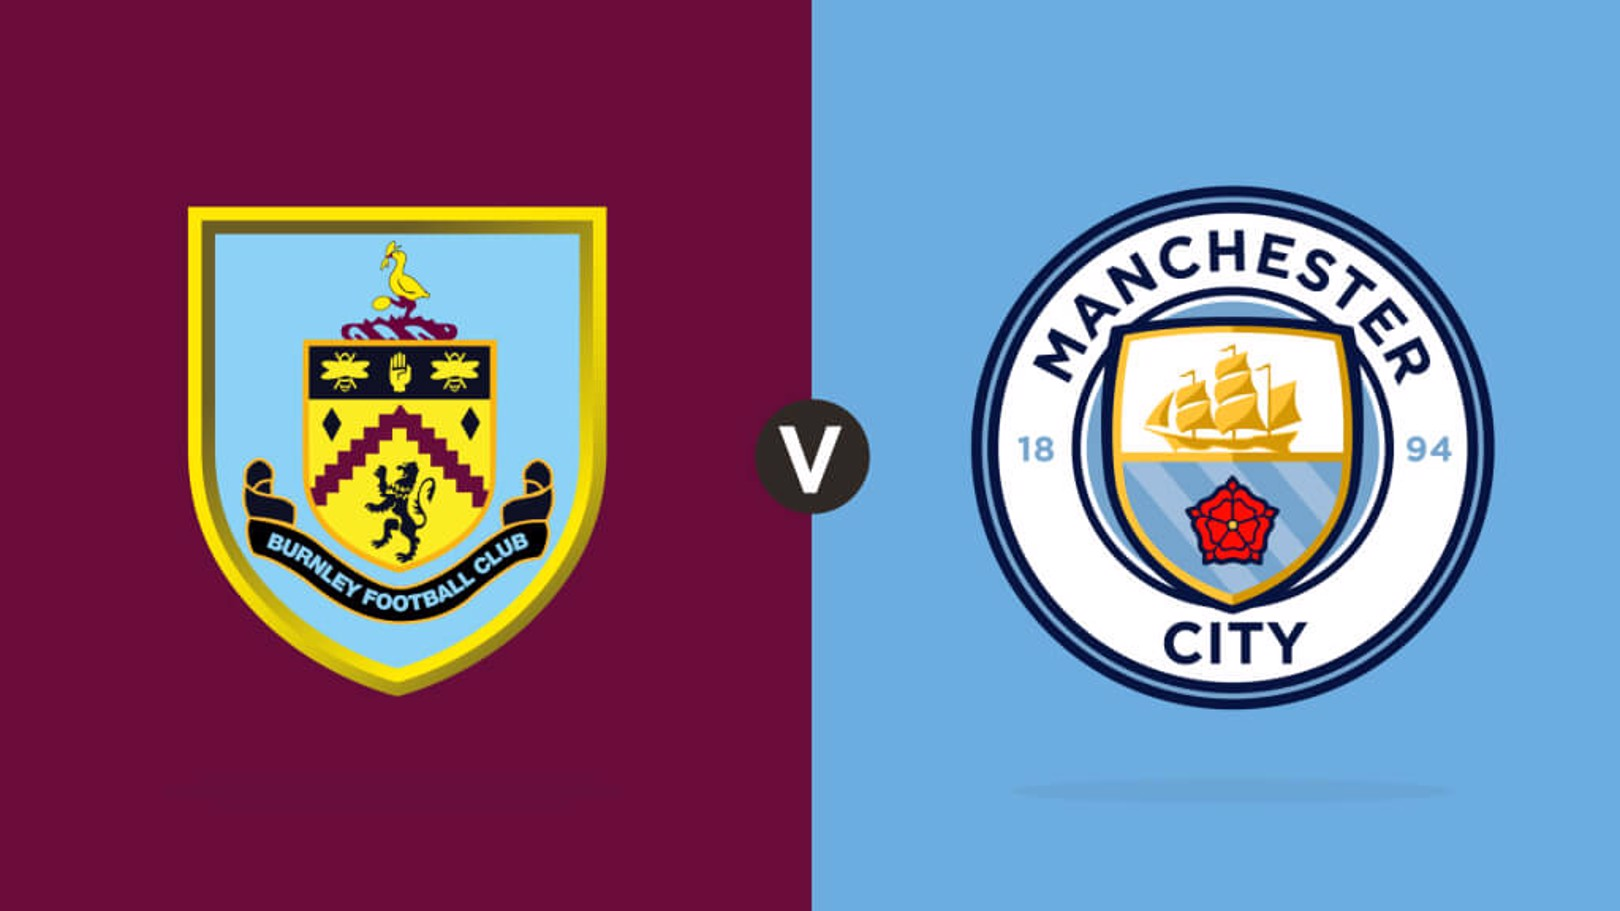 Burnley v City